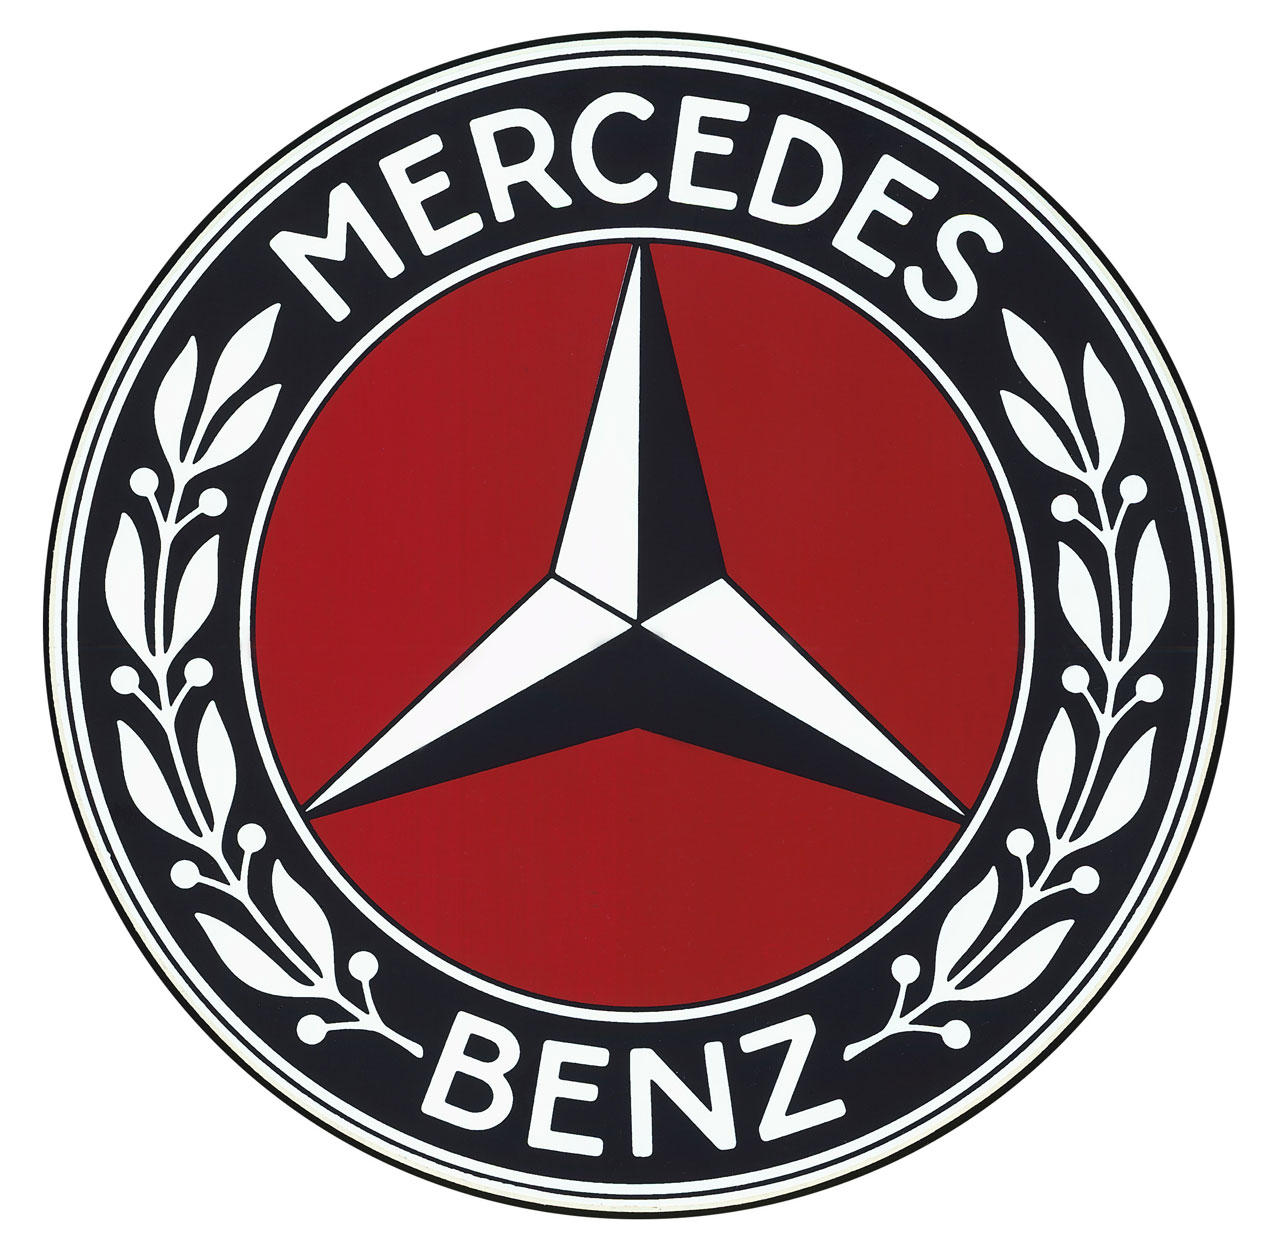 The origins of Mercedes' three-pointed star logo